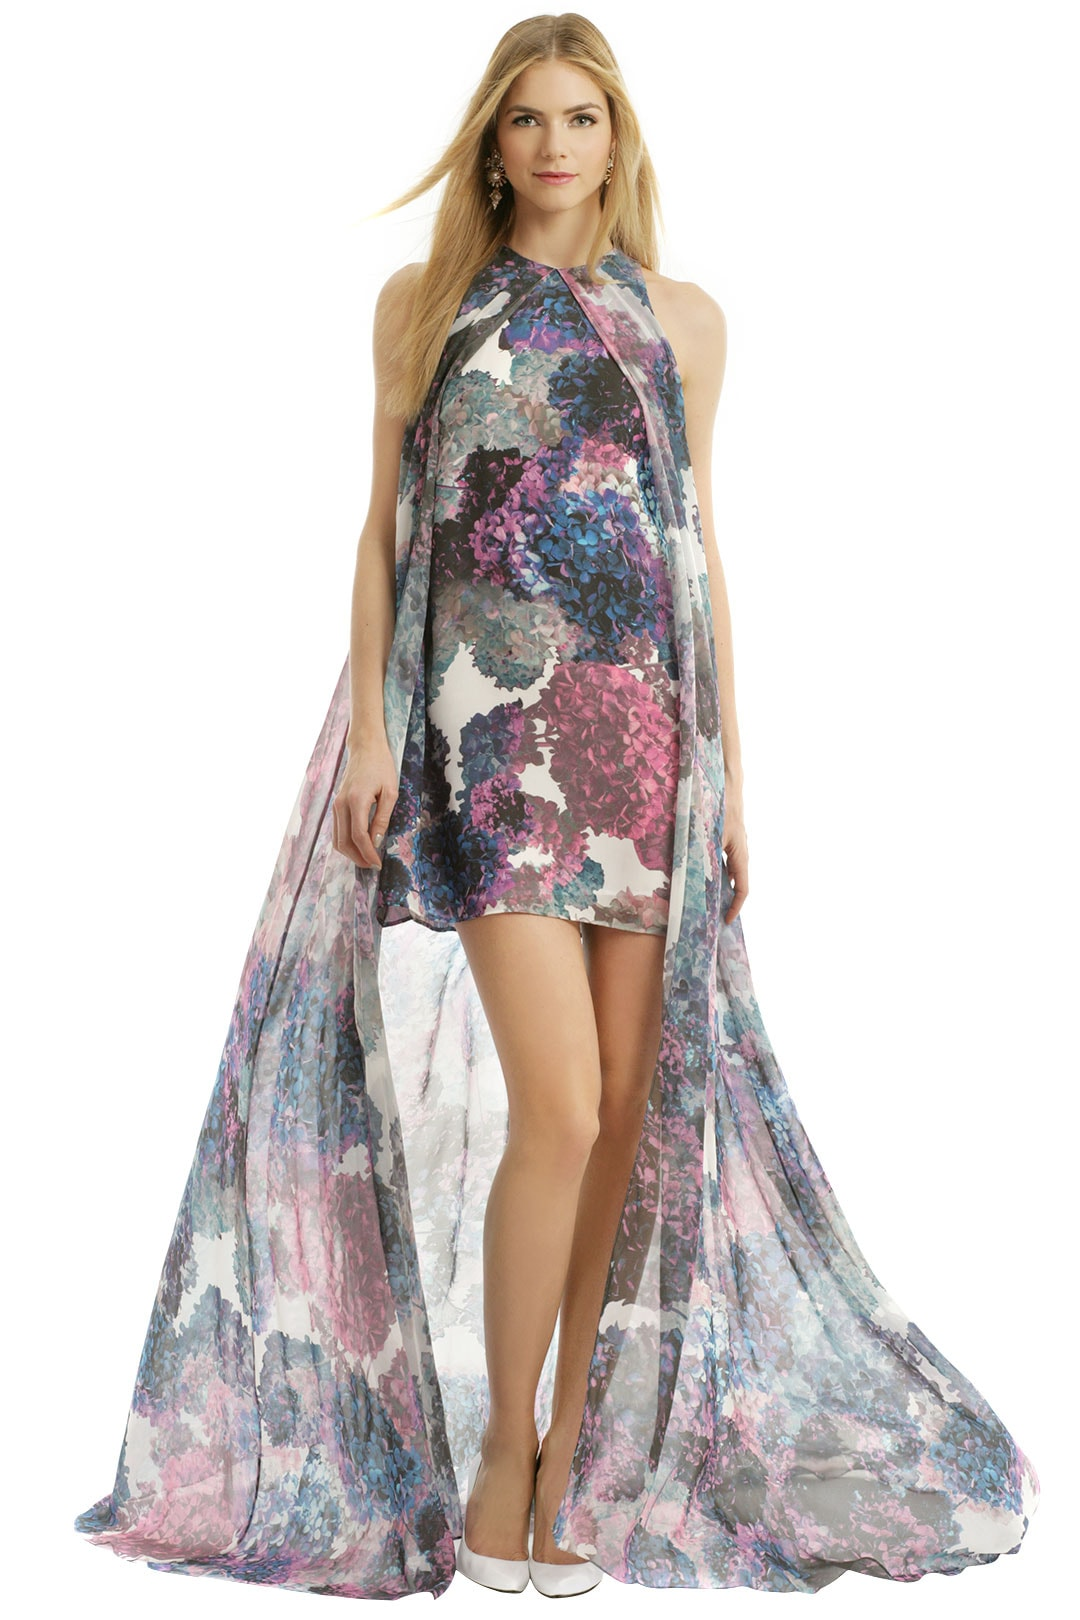 Floral dress short in the front, long in the back